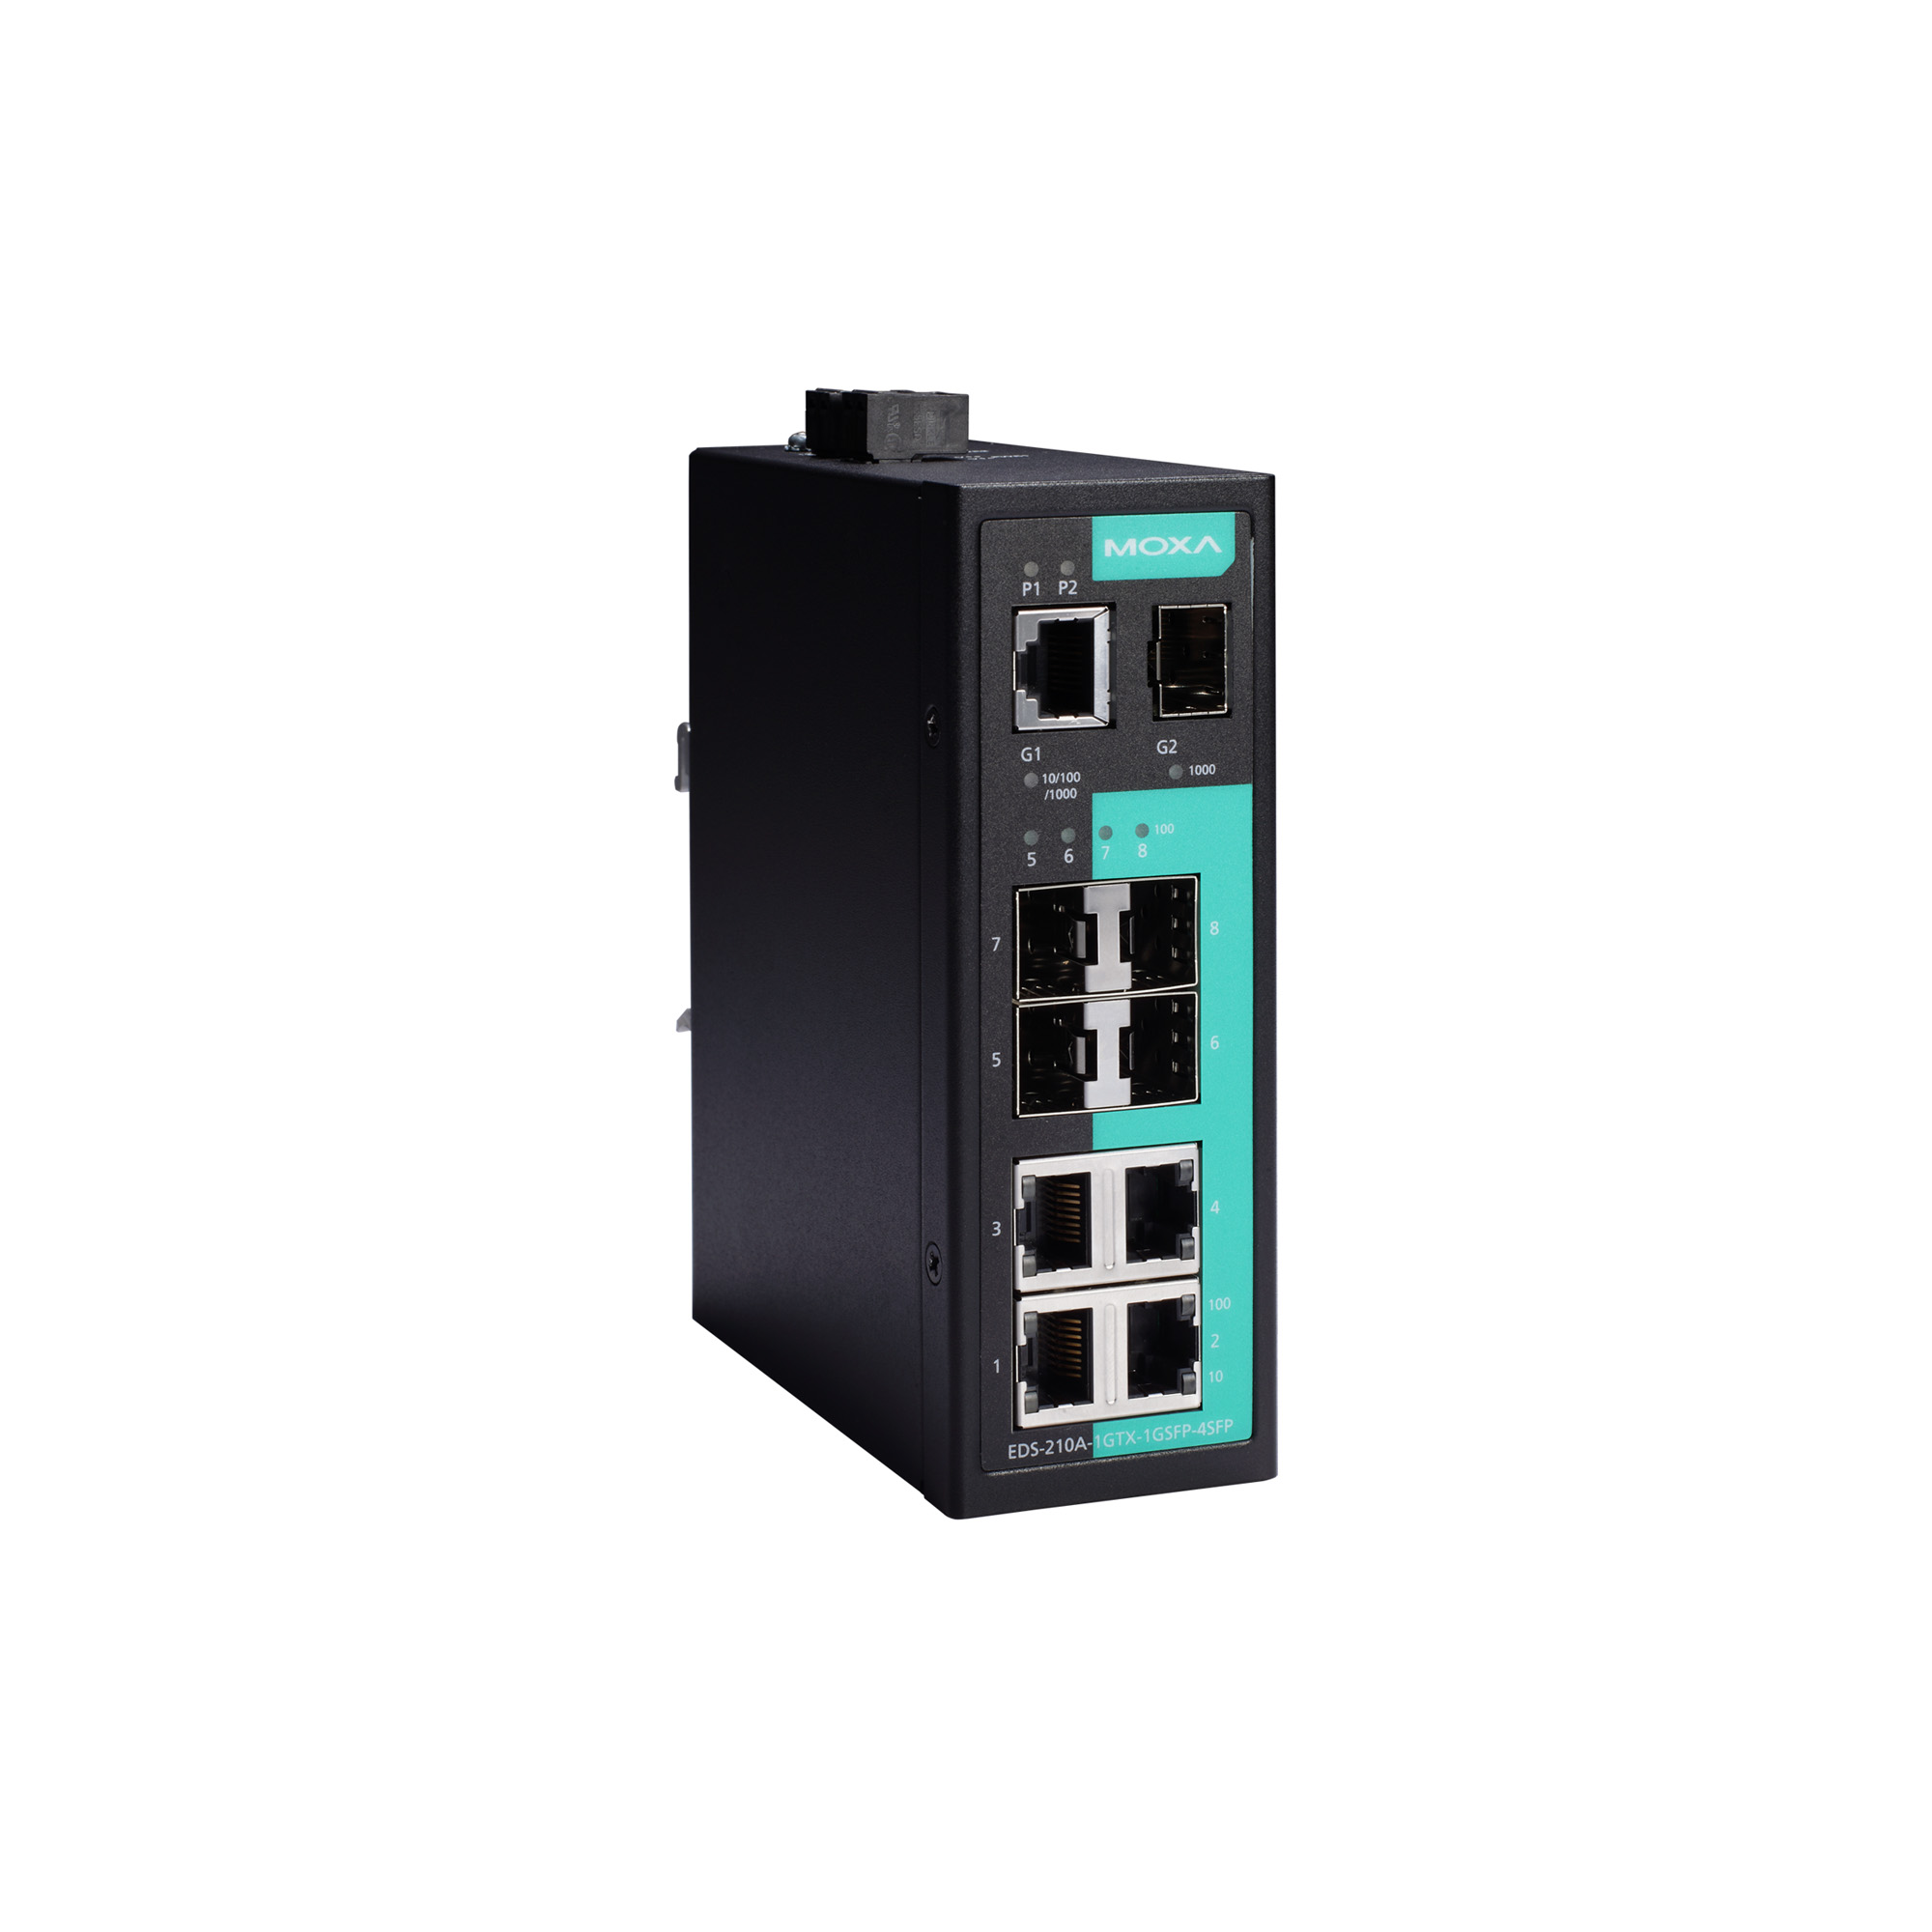 EDS-210A Series - Unmanaged Switches | MOXA